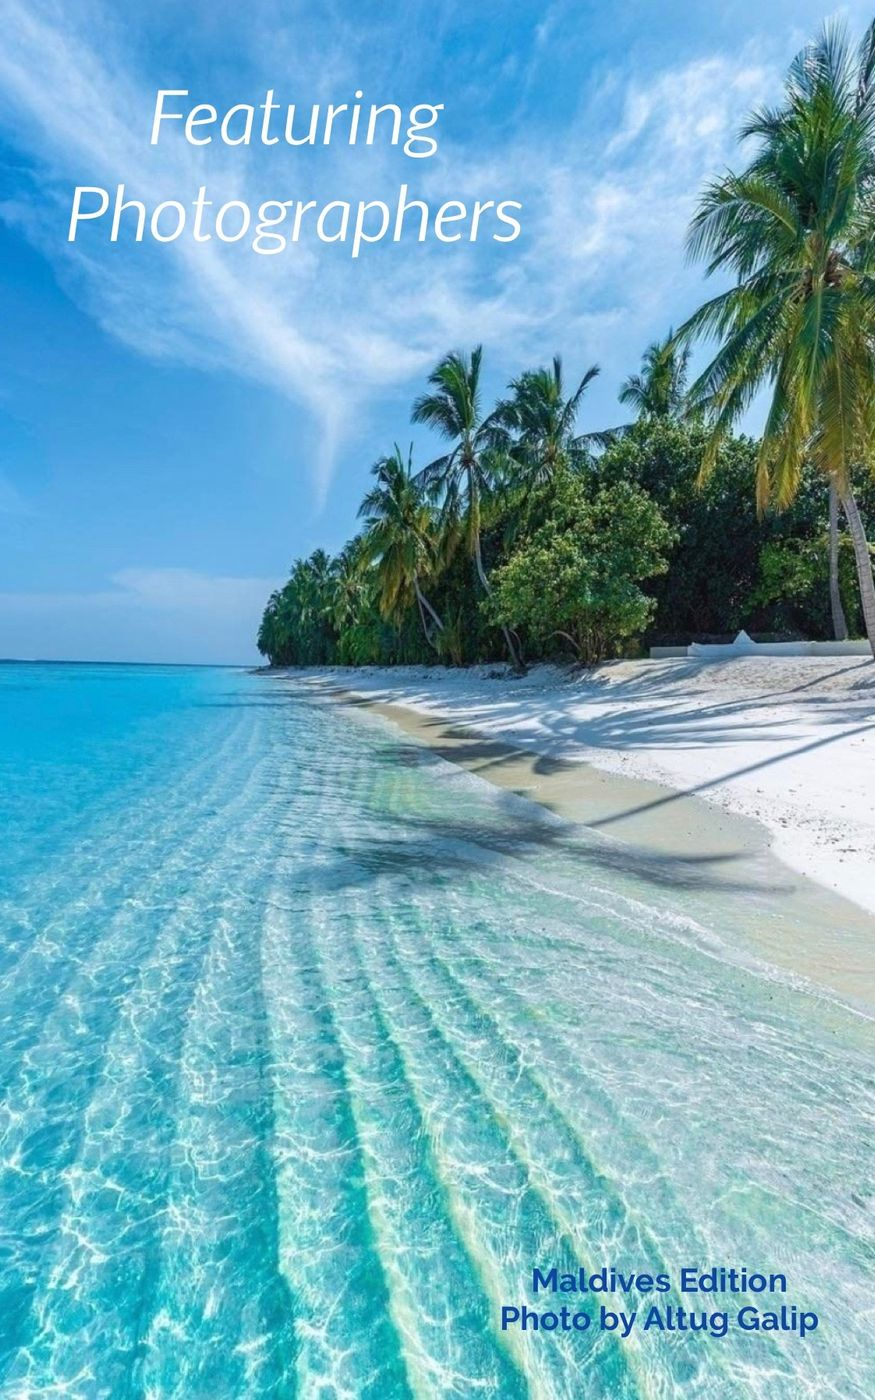 Featuring content creators and photographers | Maldives Edition